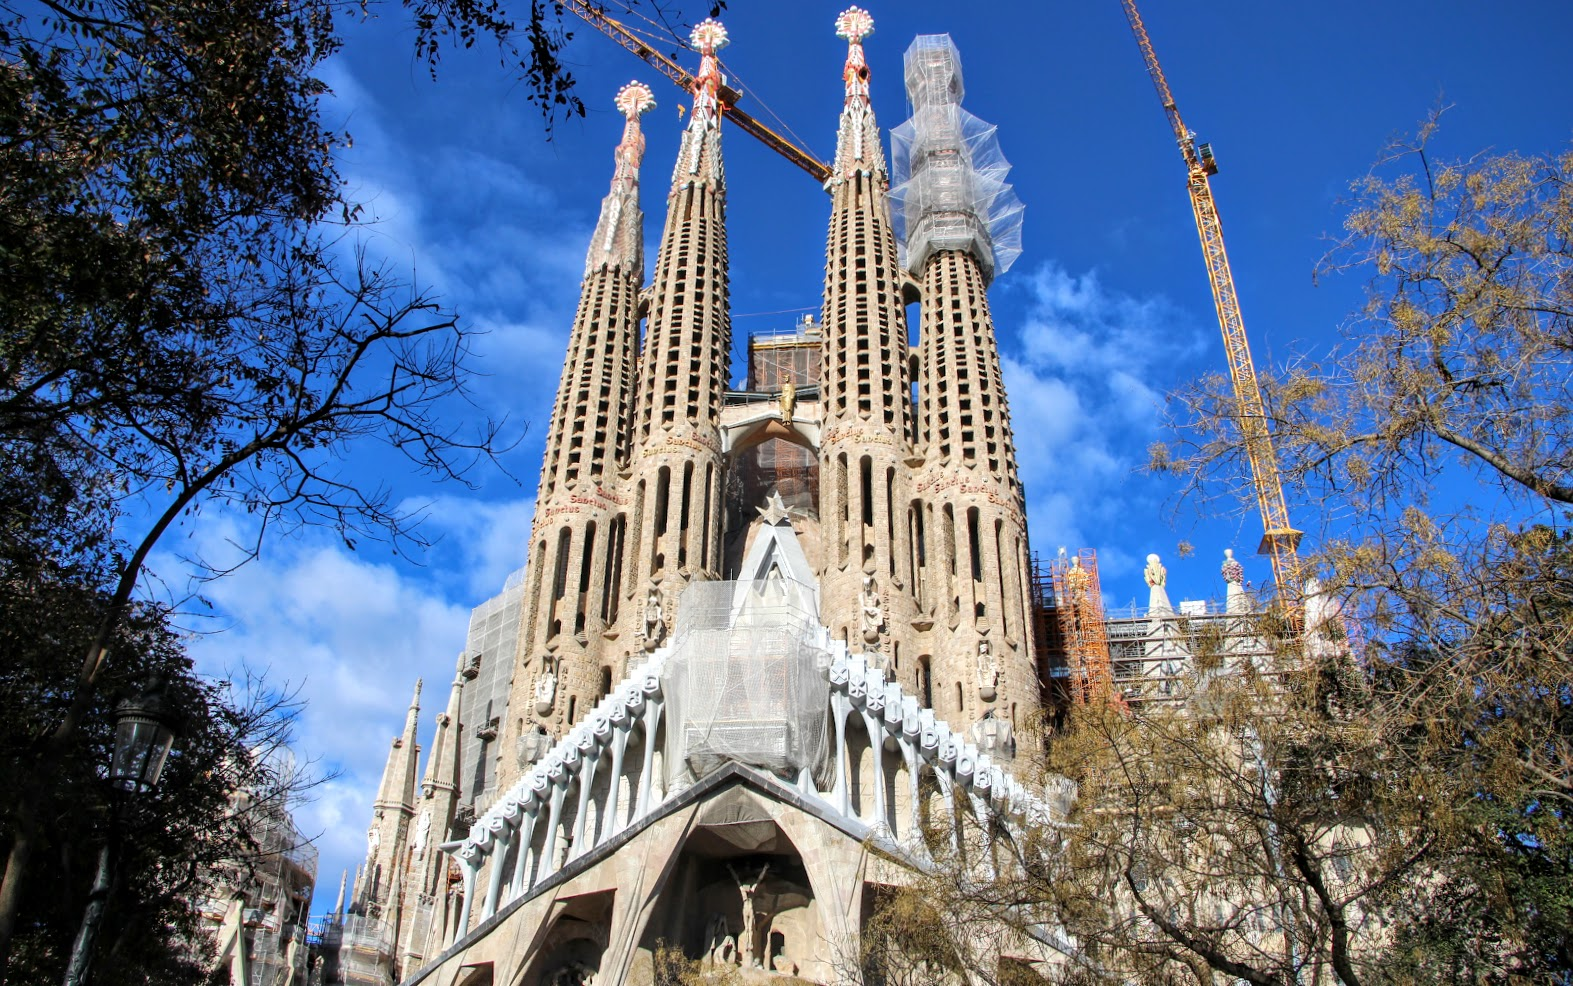 Architekt Barcelona Architecture By Bike Pedaling Your Own Gaudi Bike Tour In